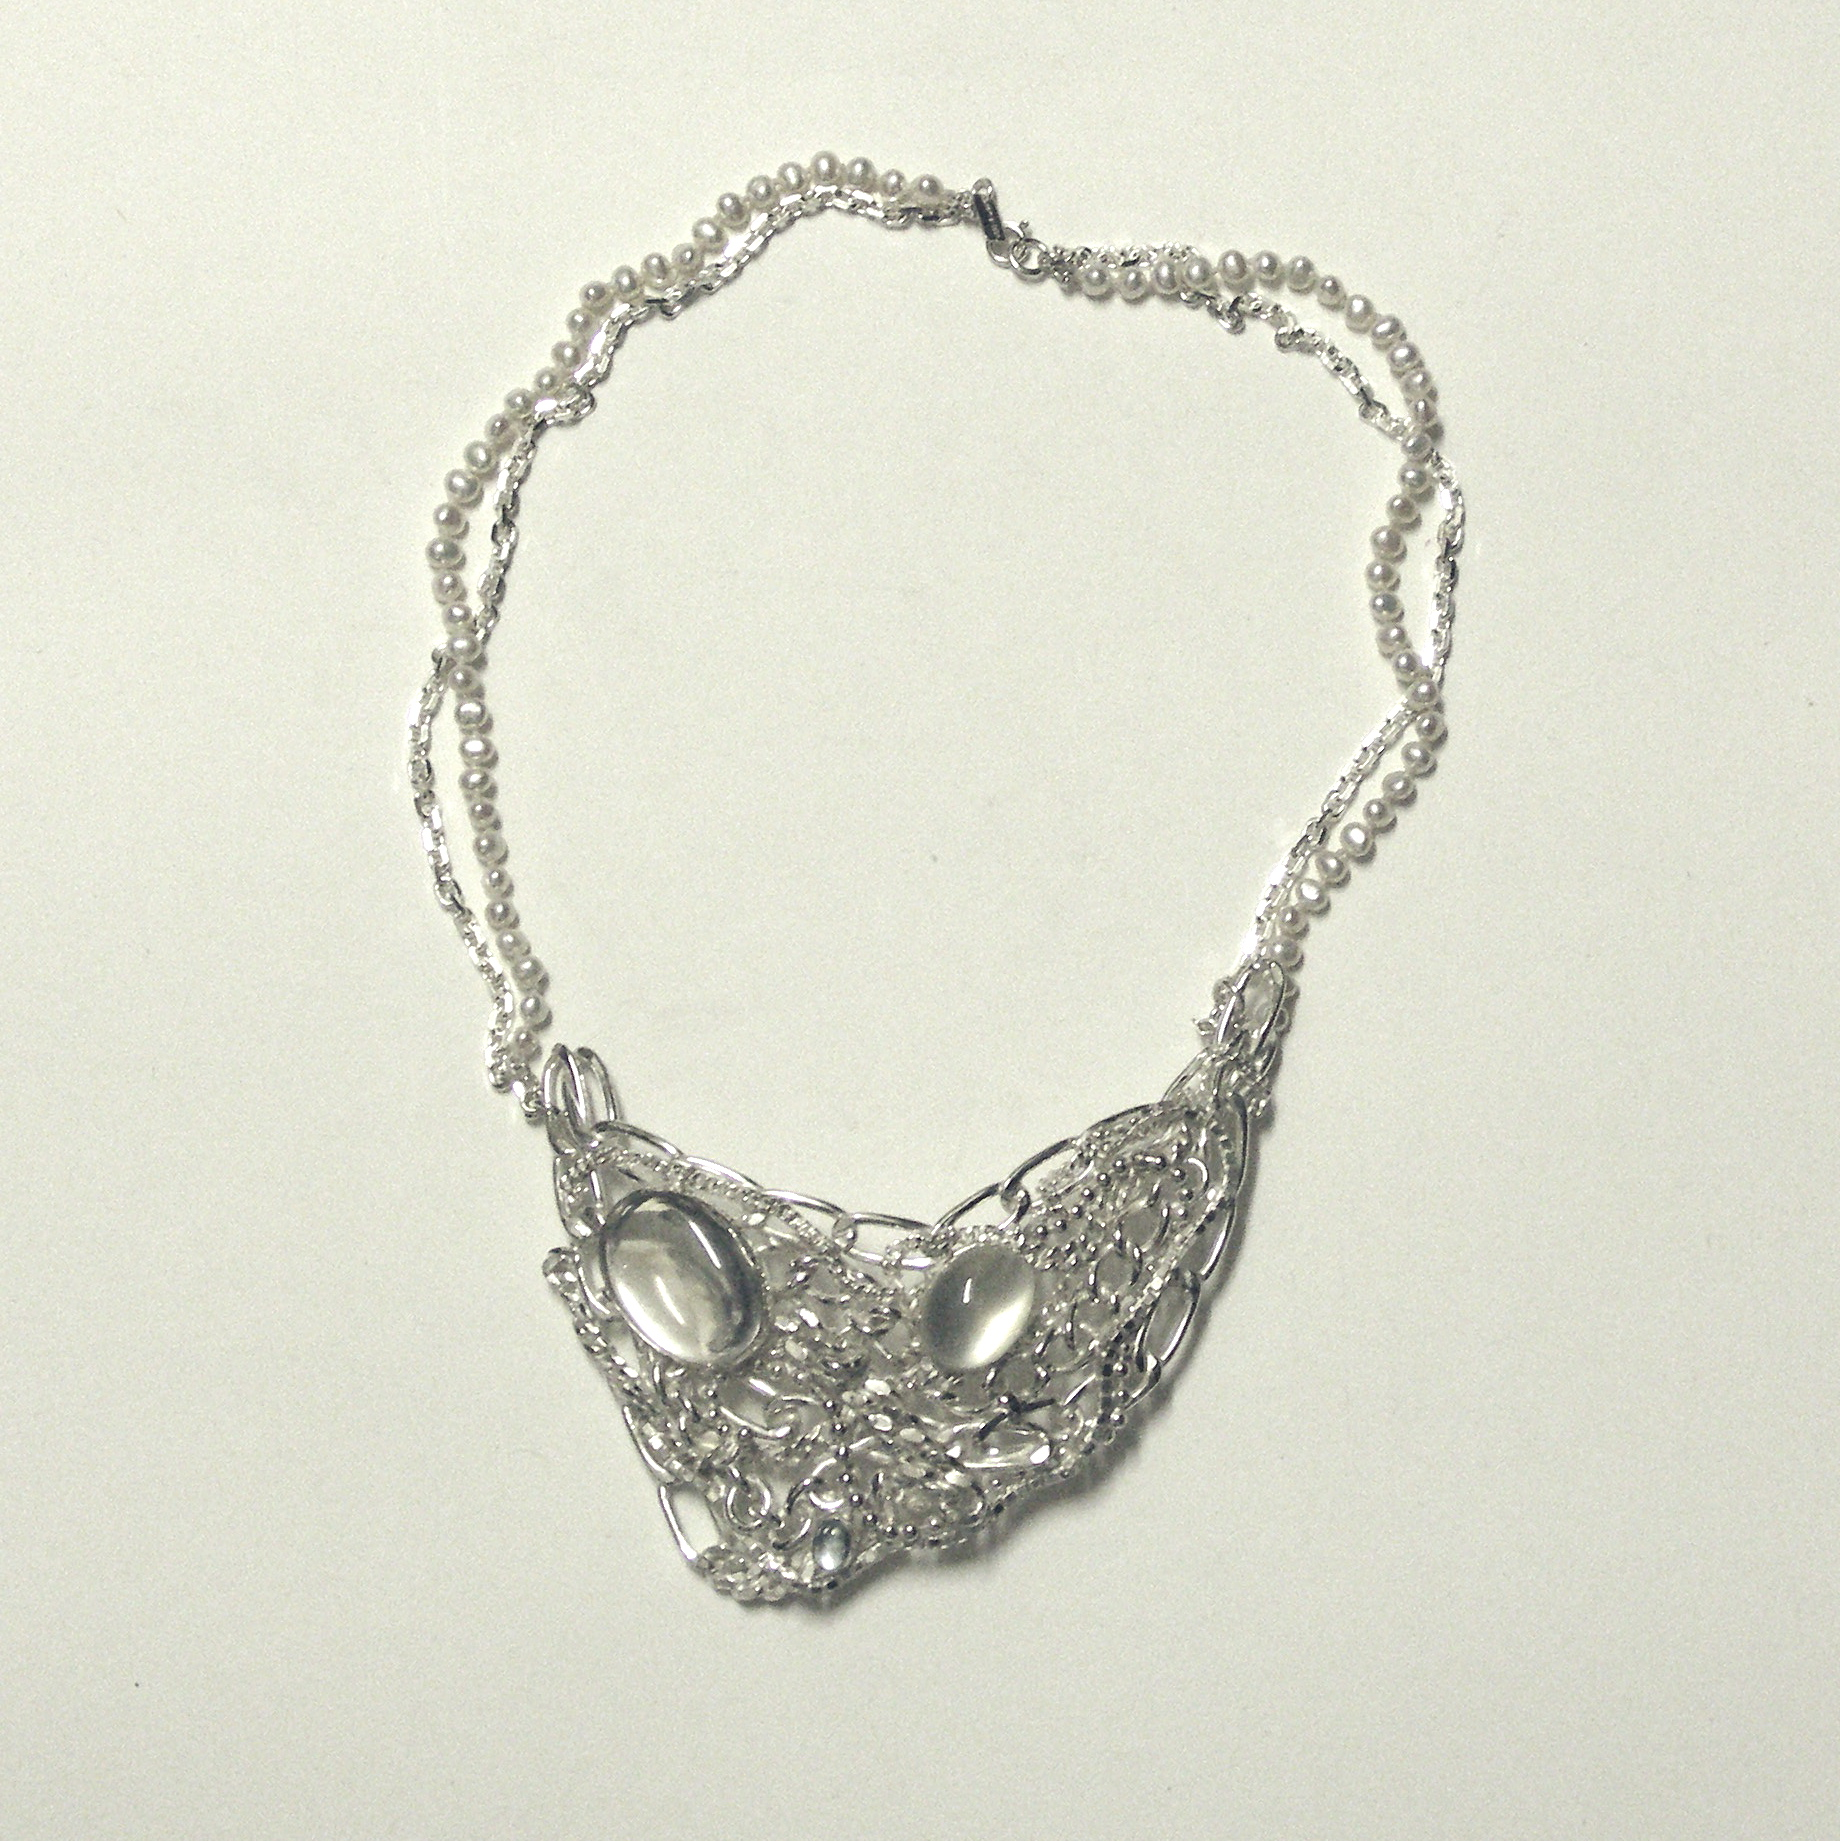 TSN-Tangled chain and stone necklace